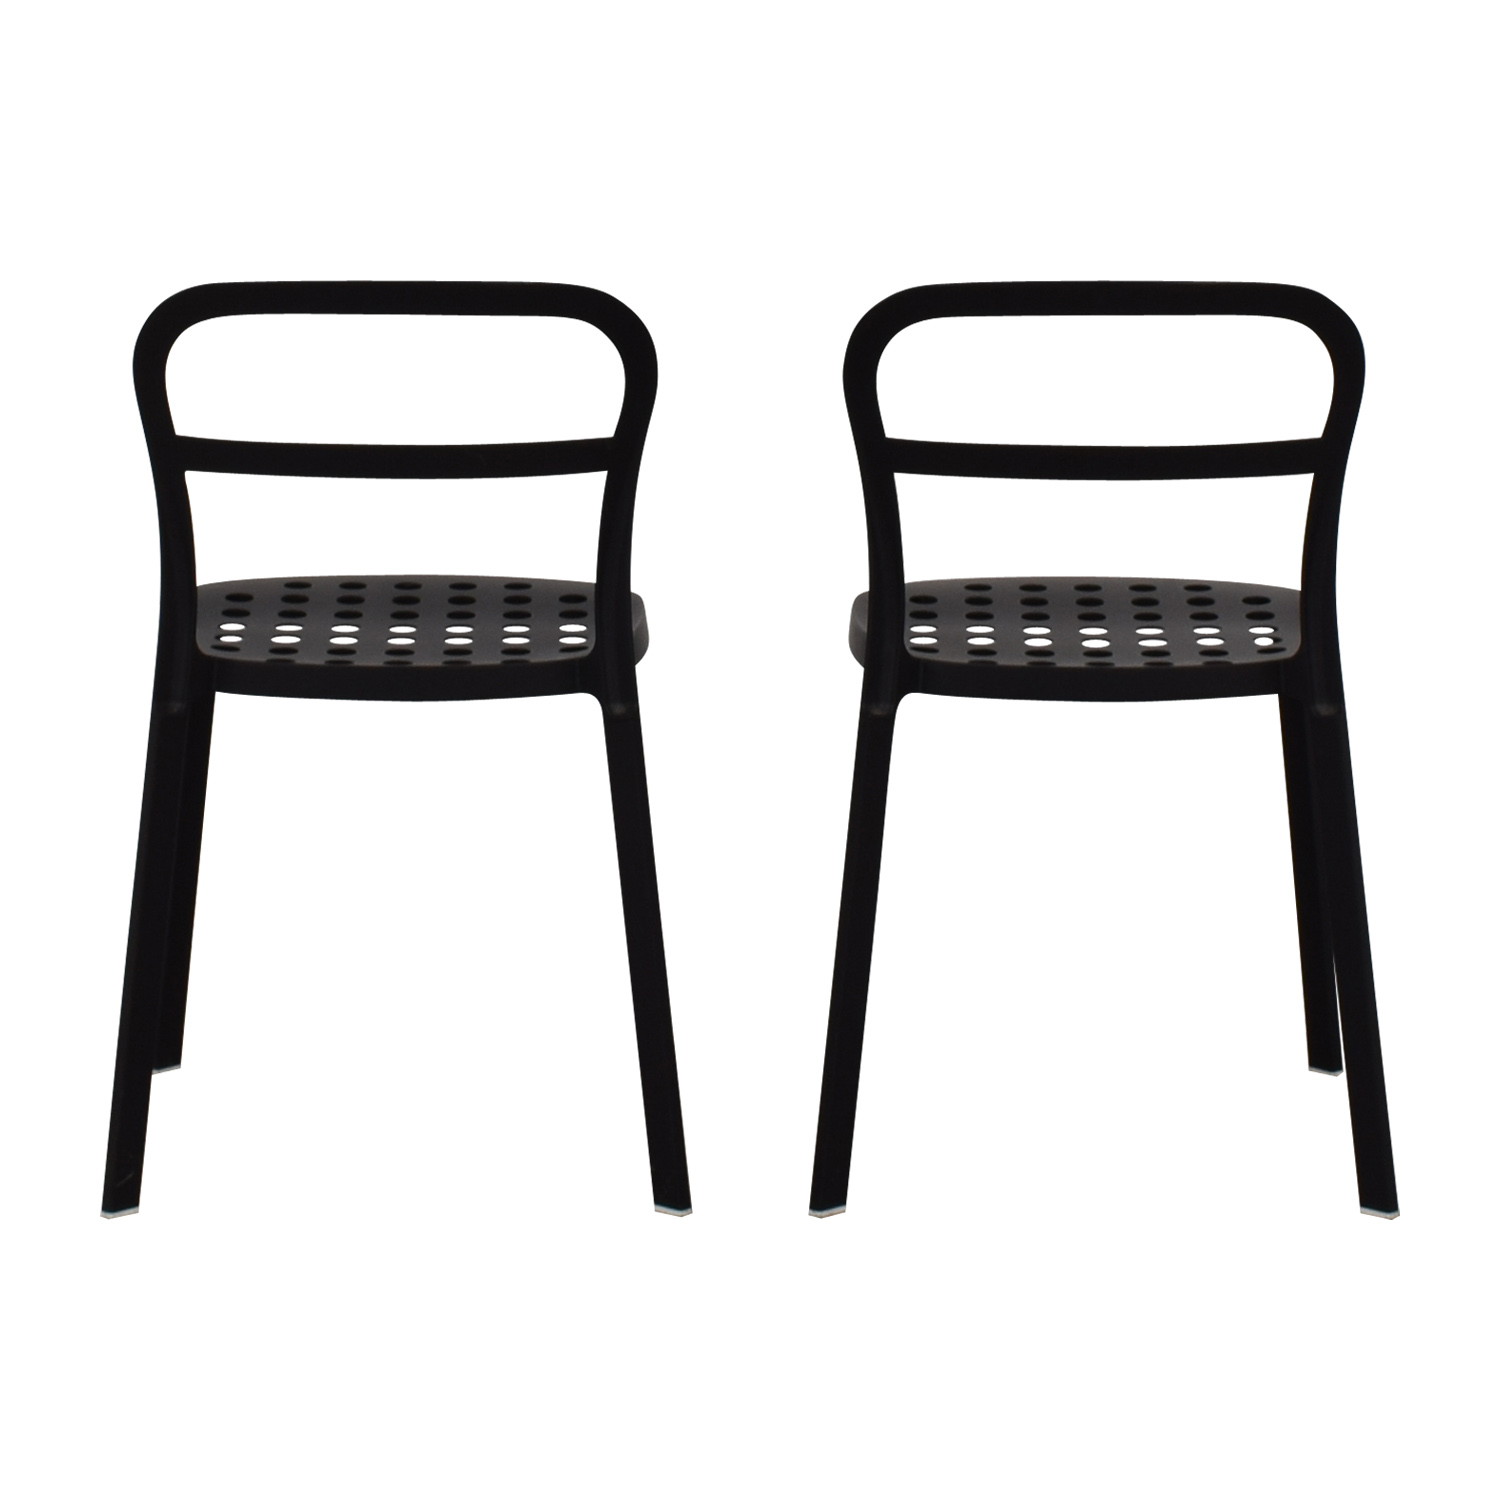 Best Picture Ikea Black Metal Chair